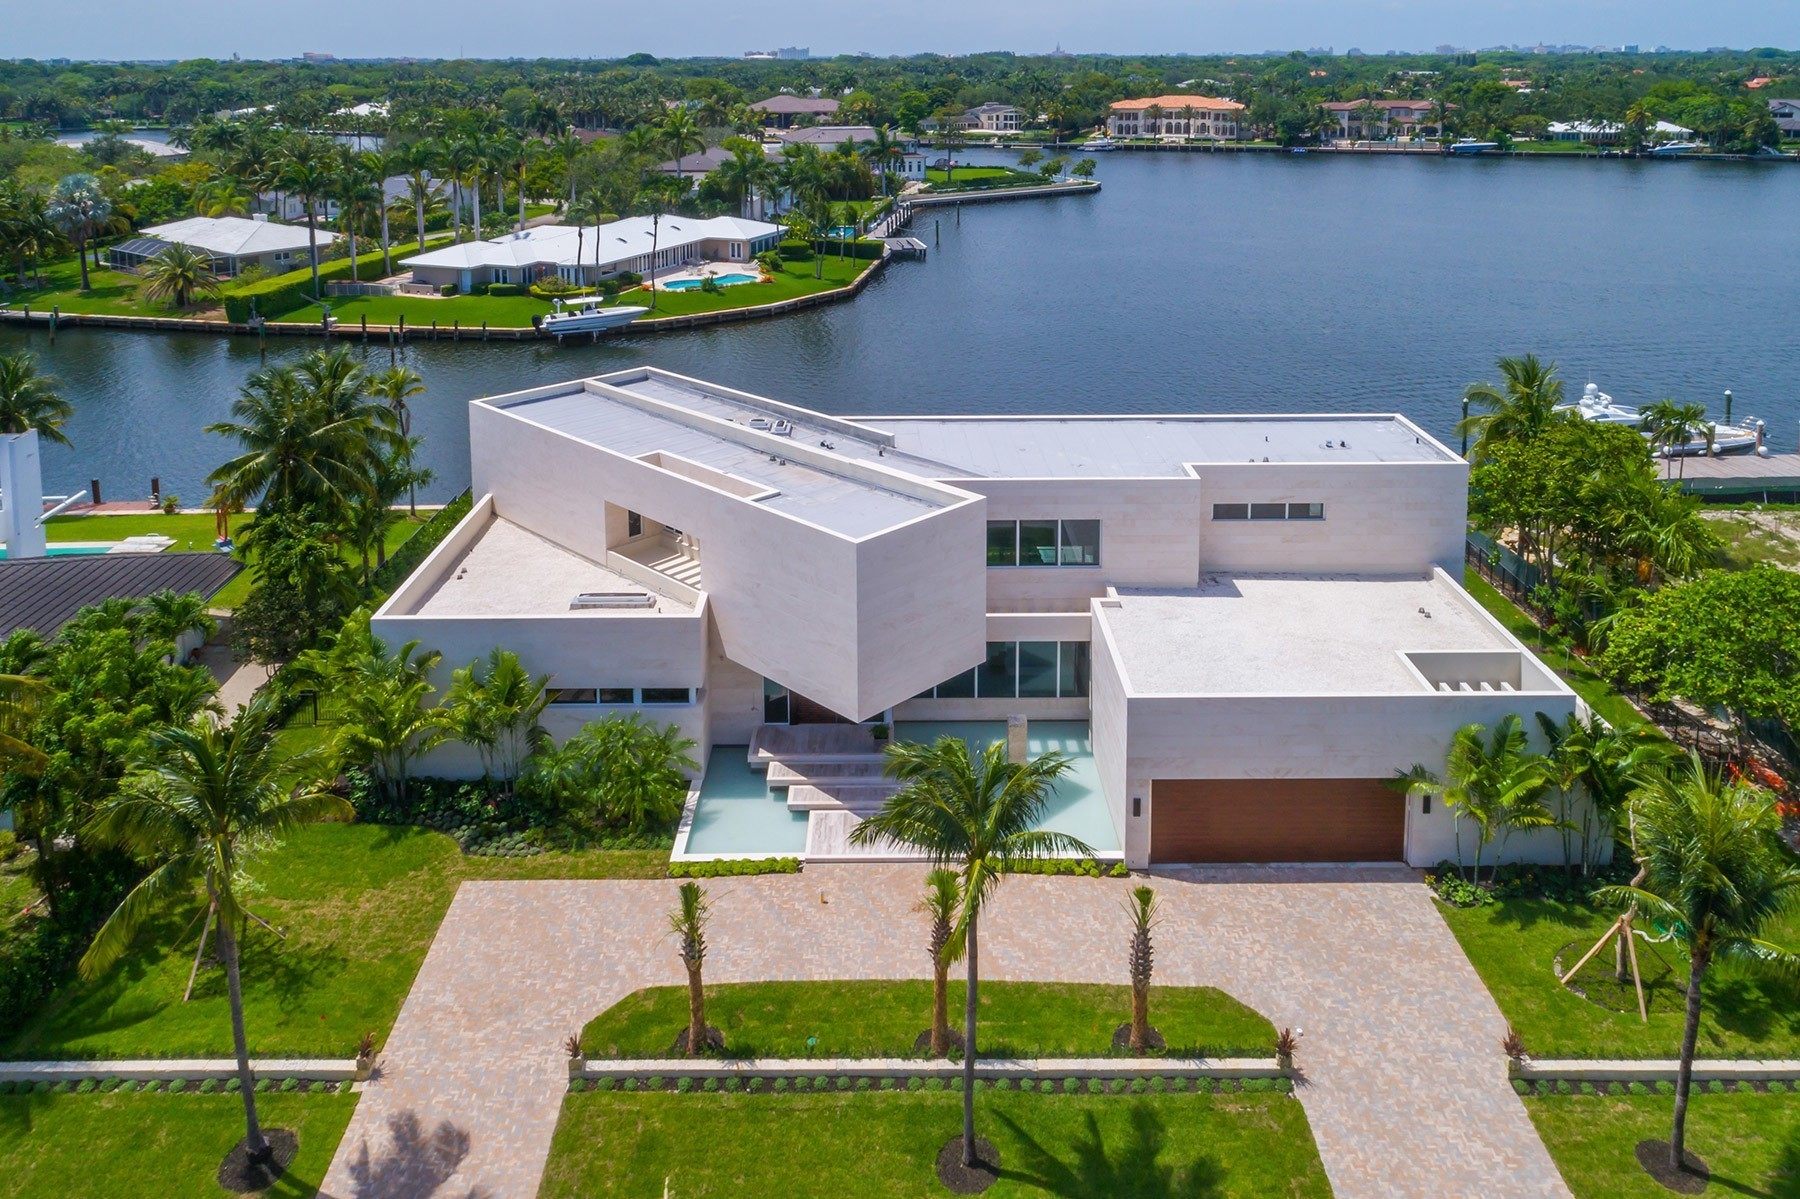 Extraordinary spec home in Coral Gables with 'floating' master bedroom asks $14M